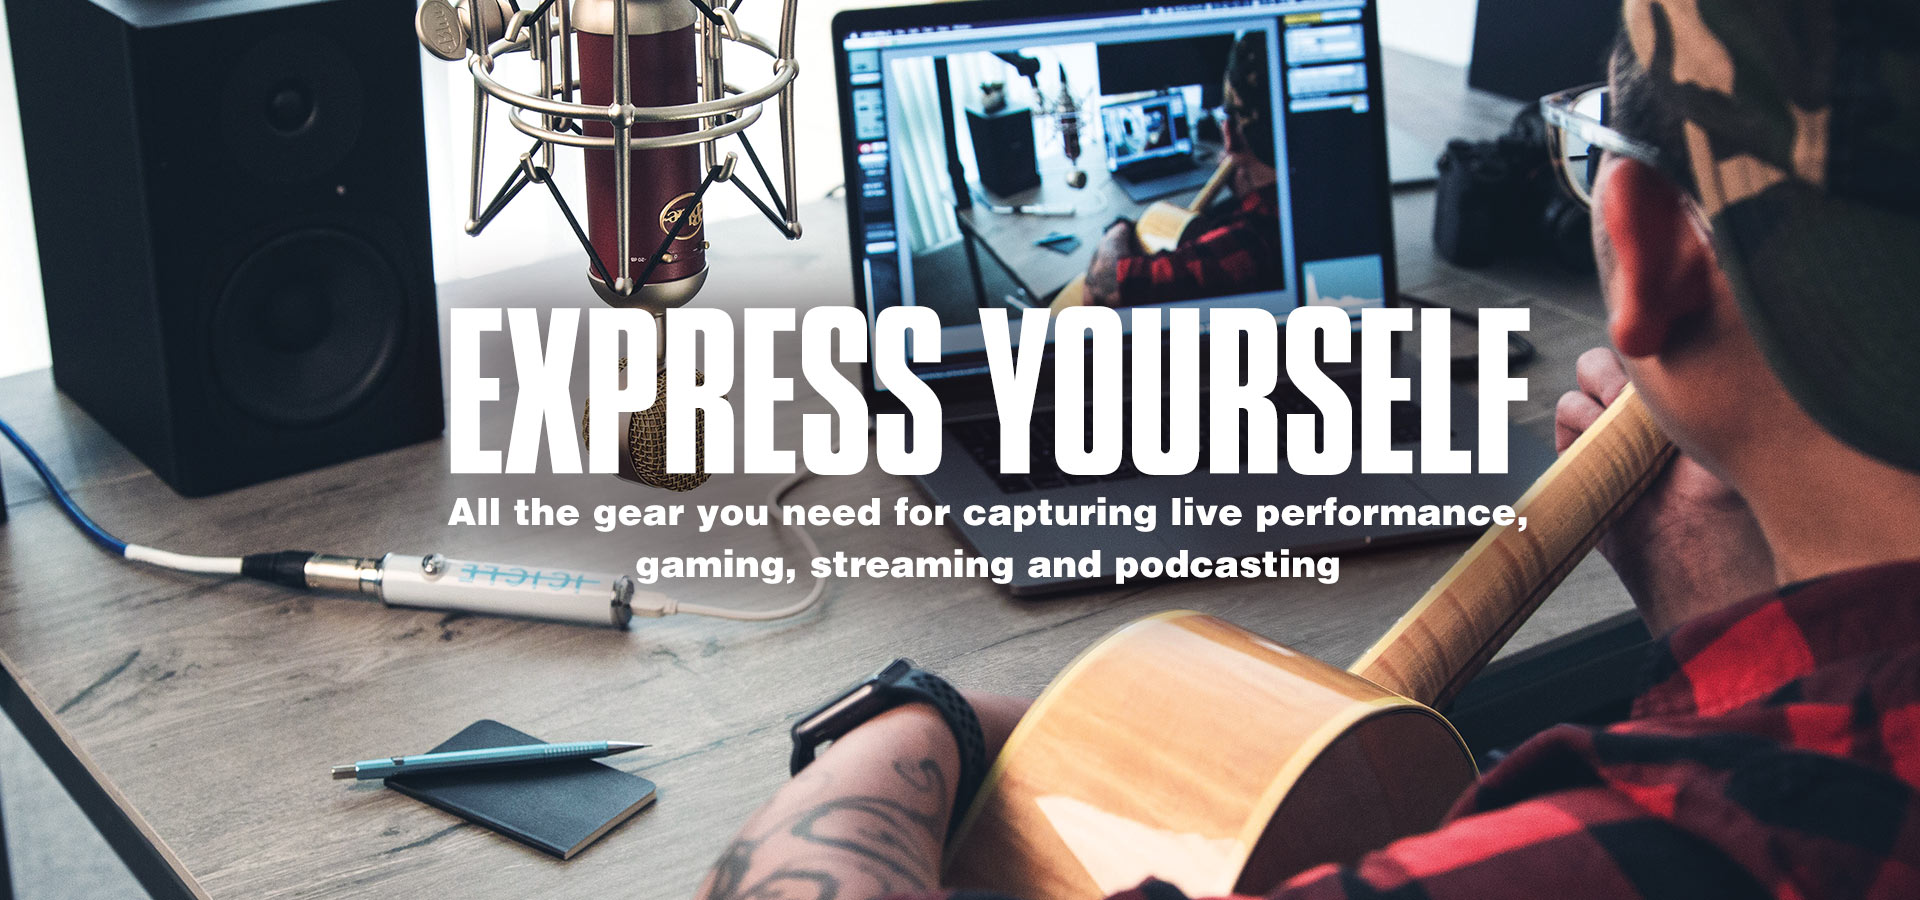 <h1>Express yourself, all the gear you need for capturing live performance, gaming, streaming and podcasting</h1>